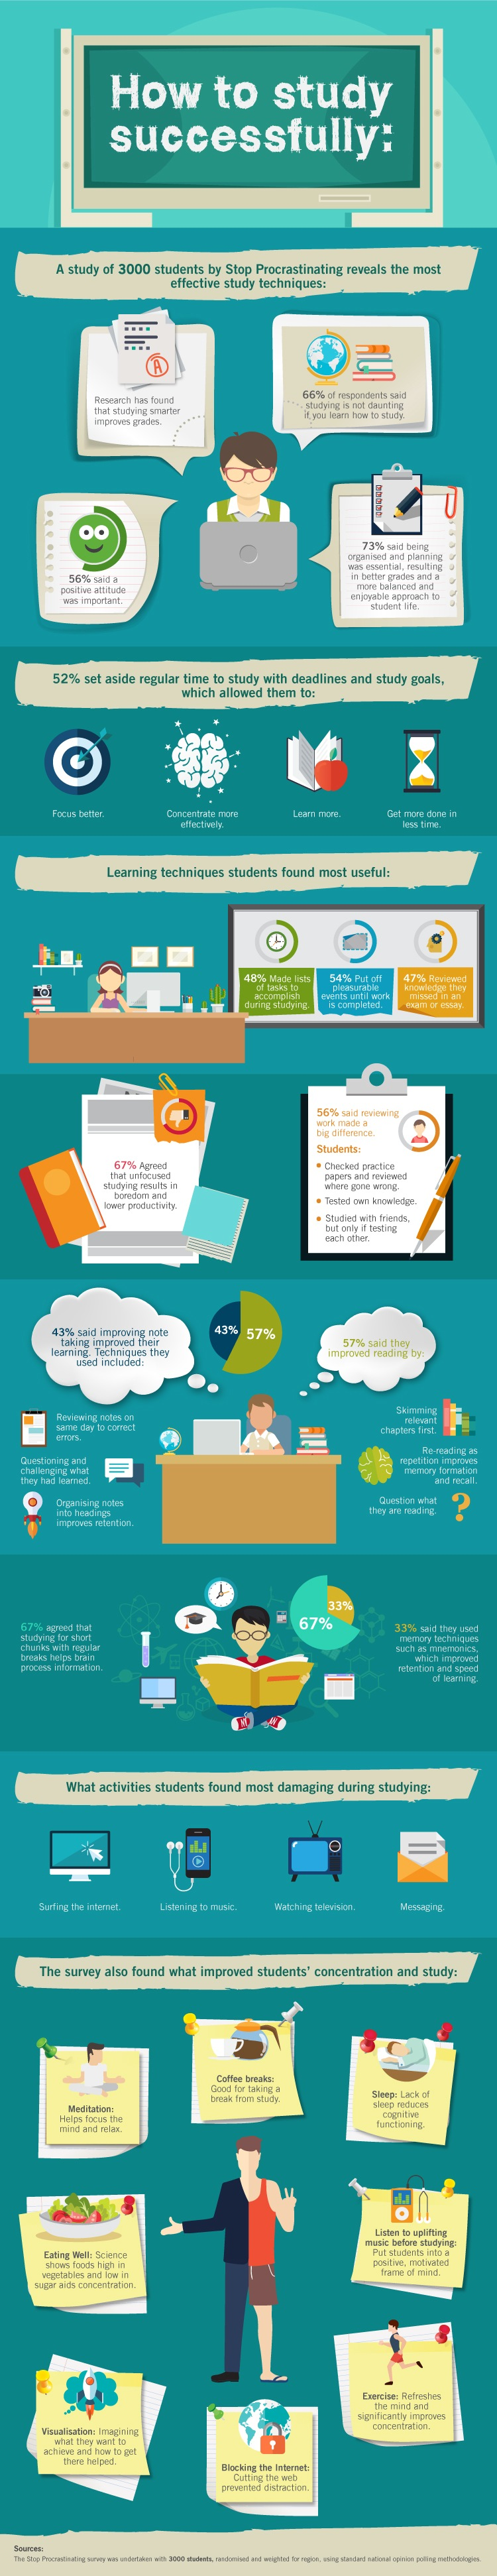 Modular Classroom Quiz ~ Successful study tips infographic news from the nest